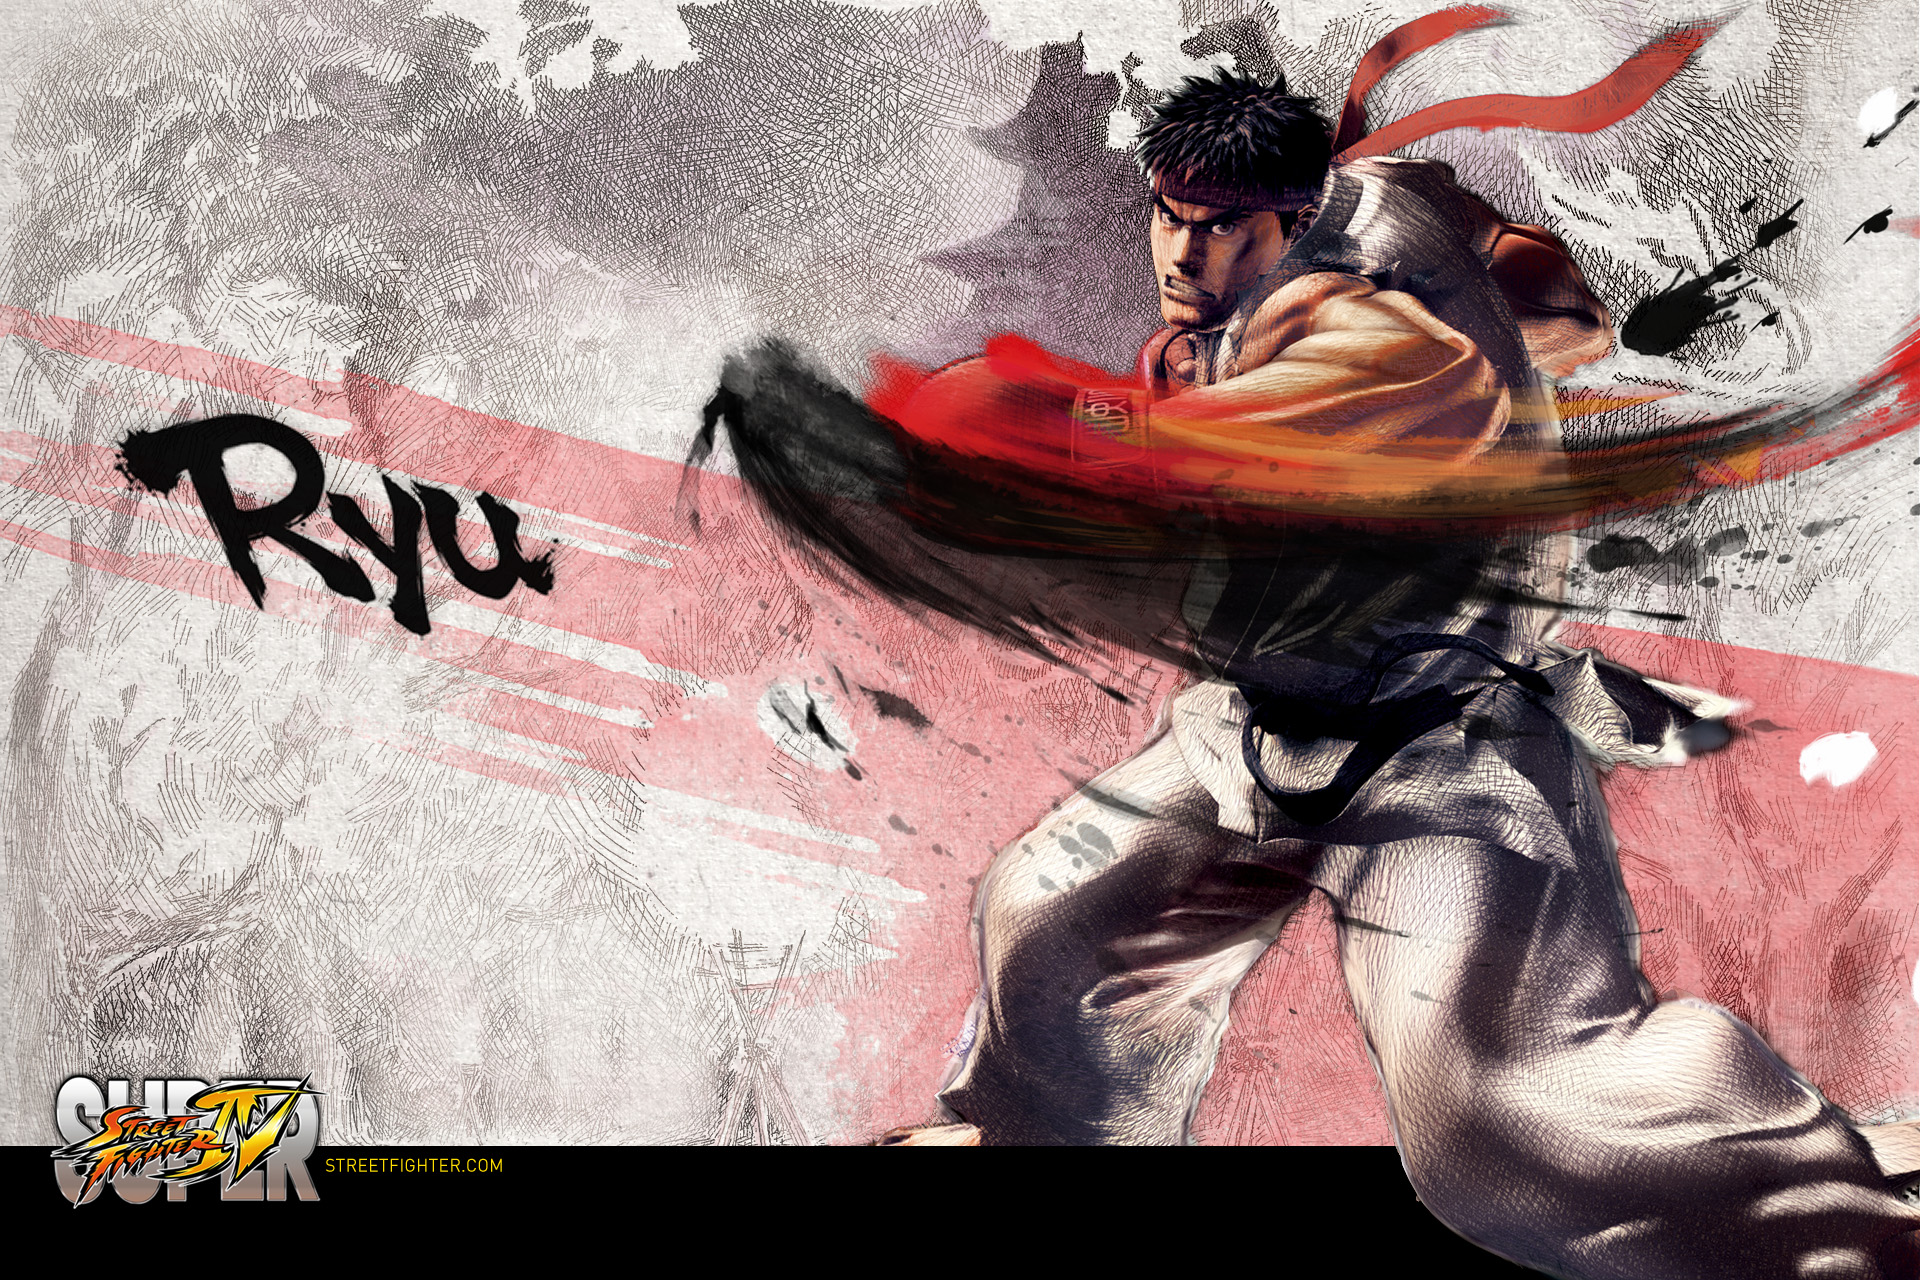 Street Fighter 4 Wallpapers: 18 Super Street Fighter IV HD Wallpapers